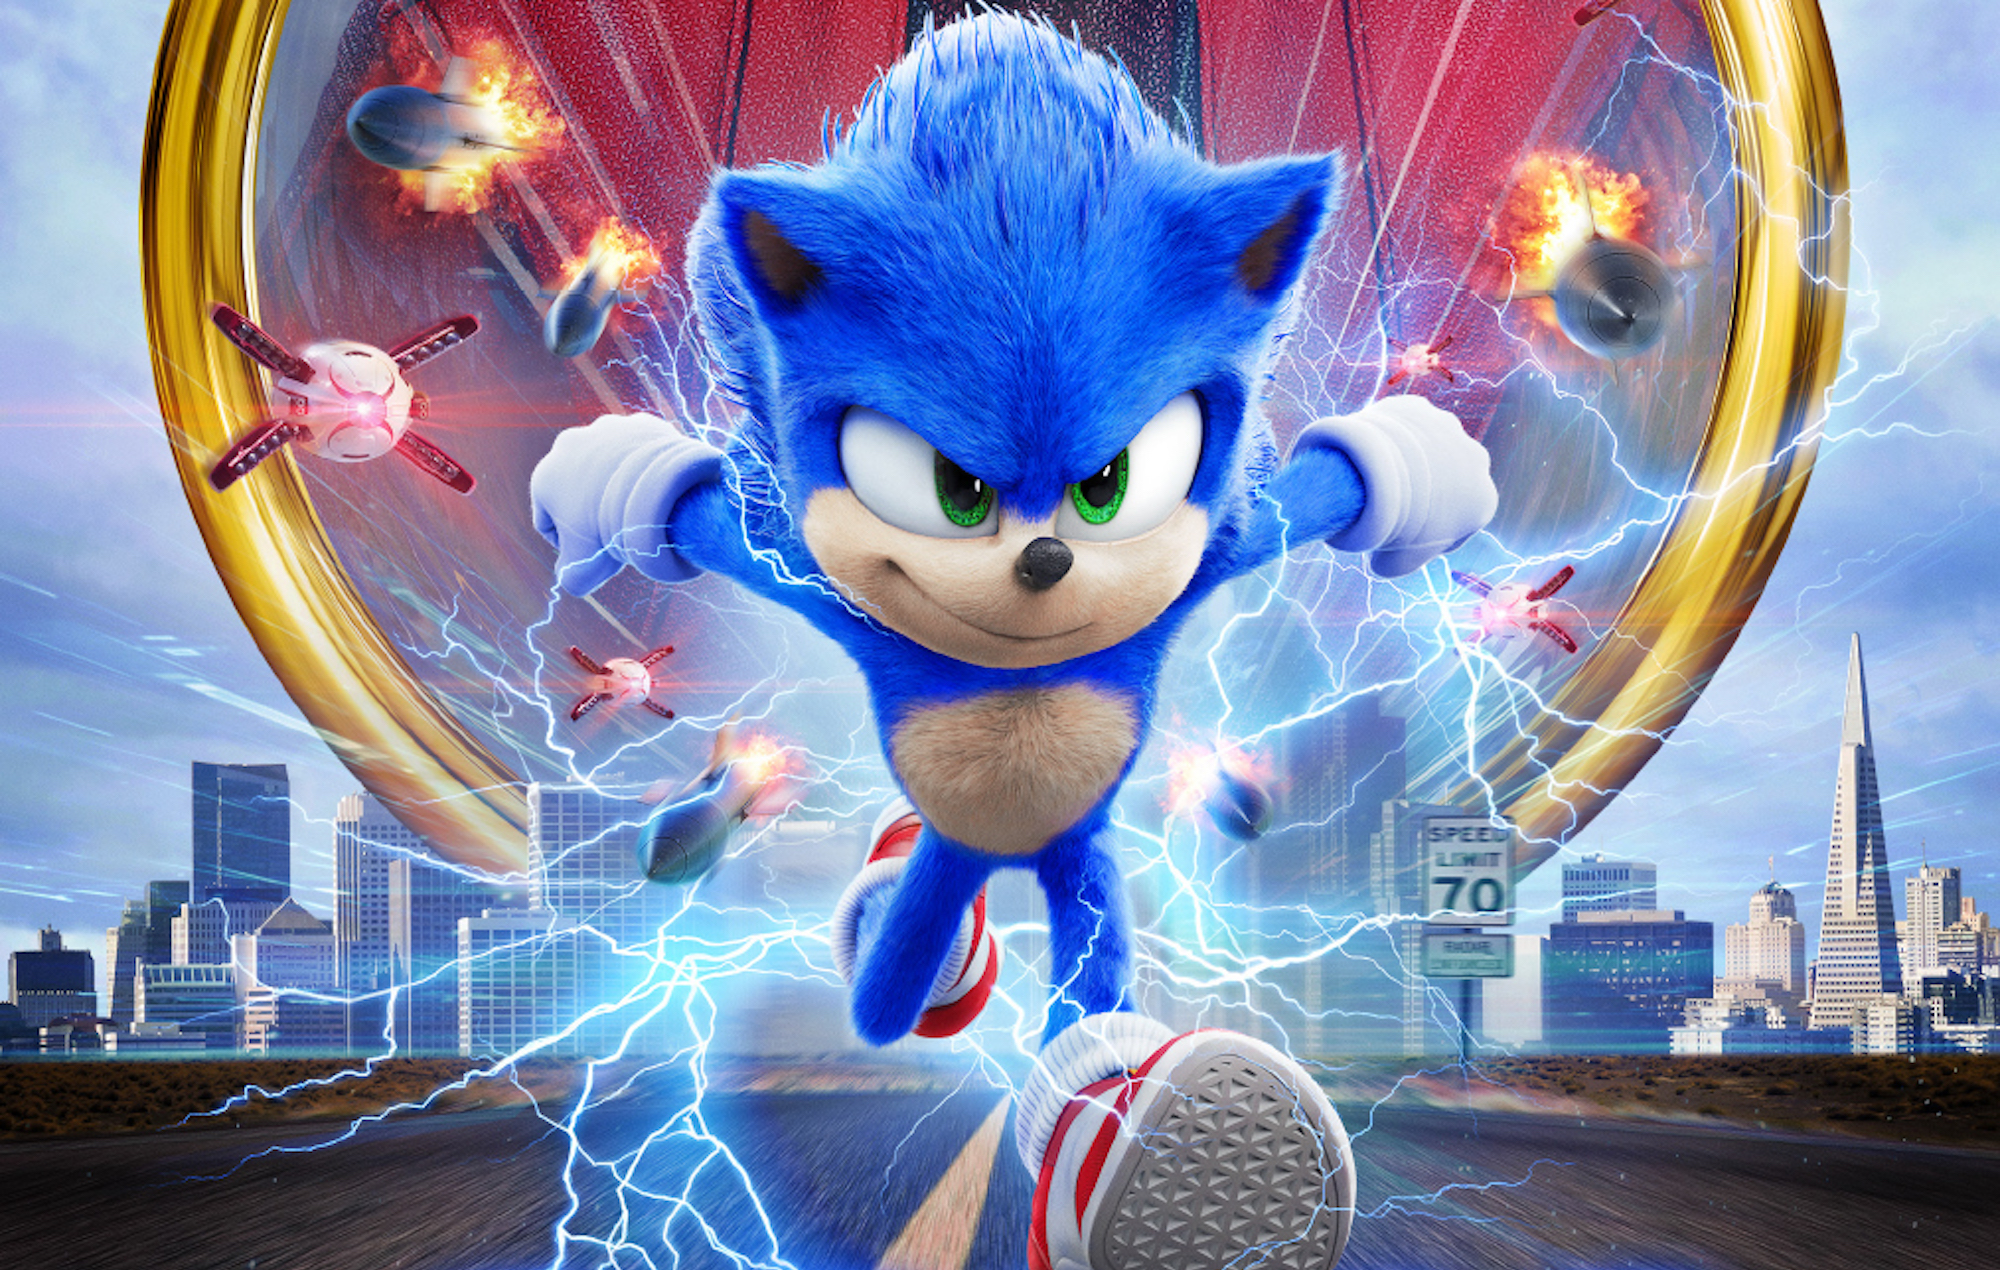 'Sonic The Hedgehog' movie shares its redesigned character in new trailer